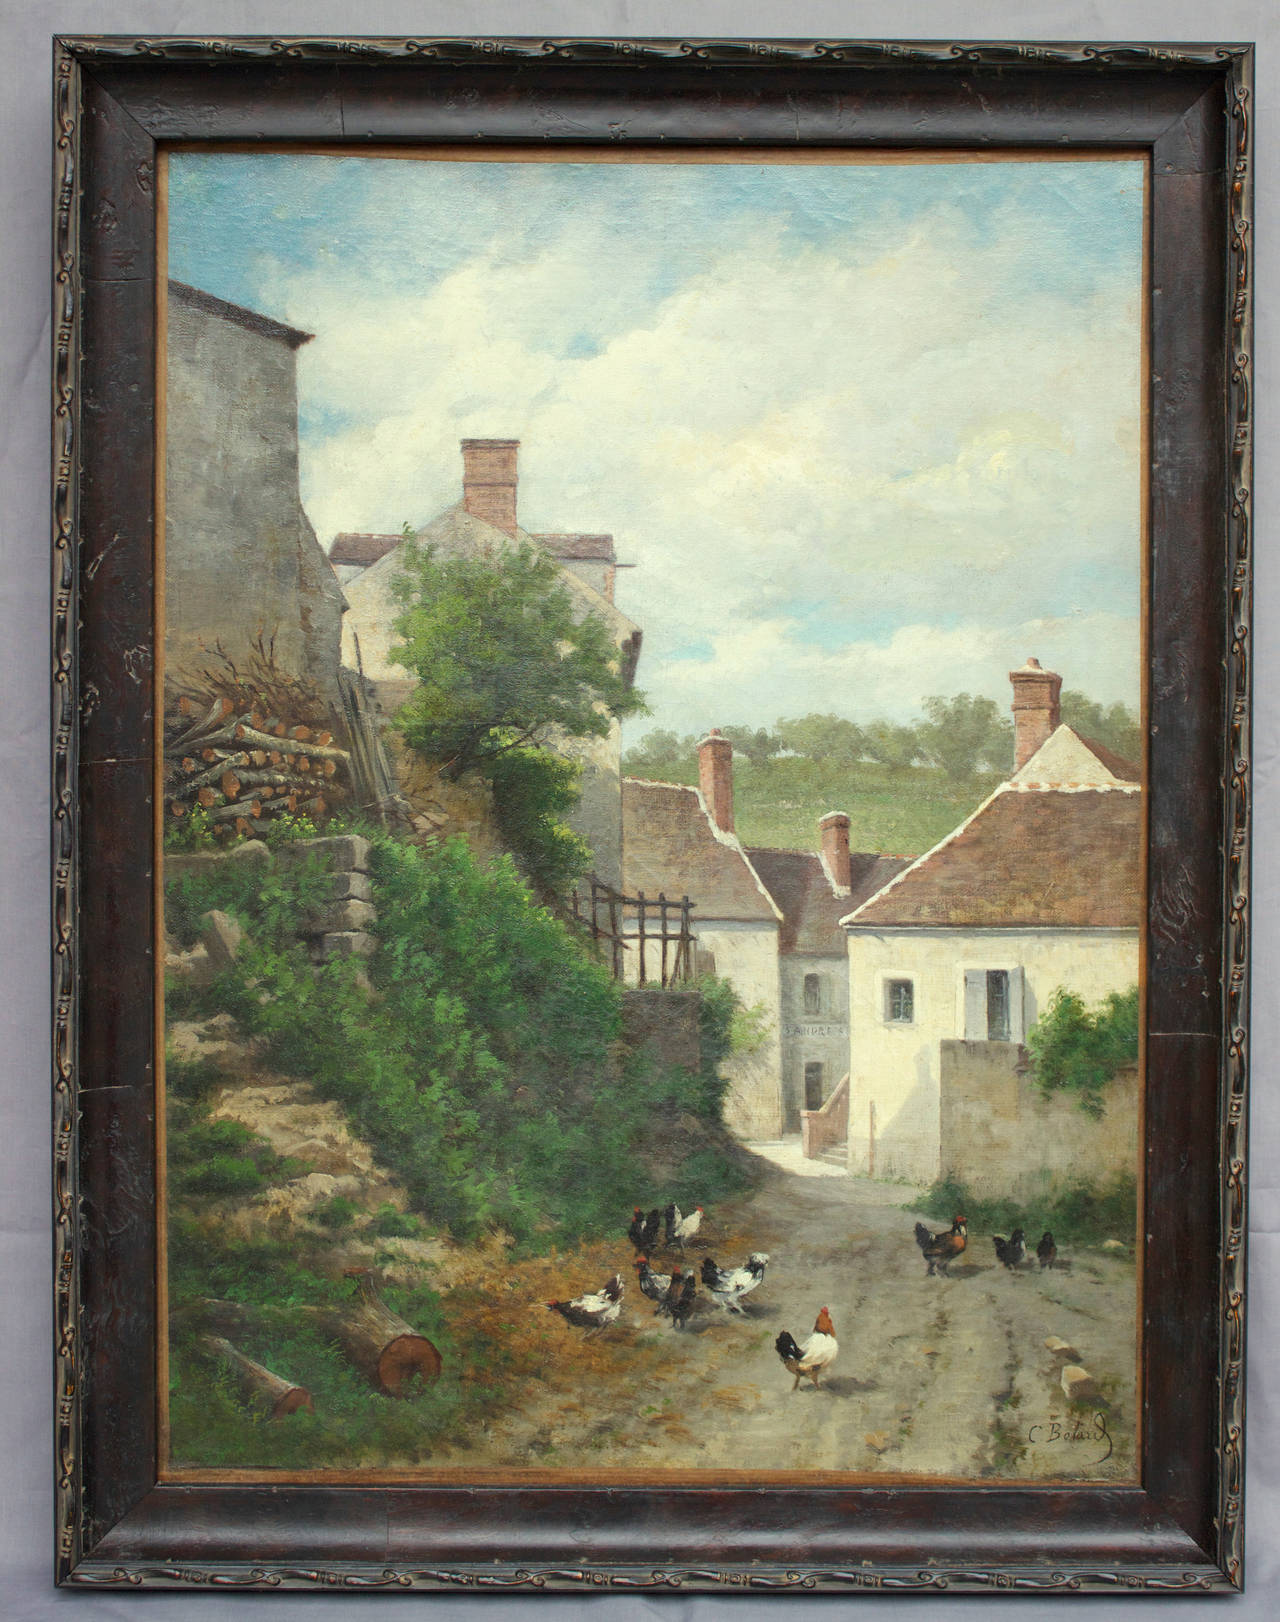 Oil on canvas signed C. Bolard on bottom right and portraying a very small village houses with